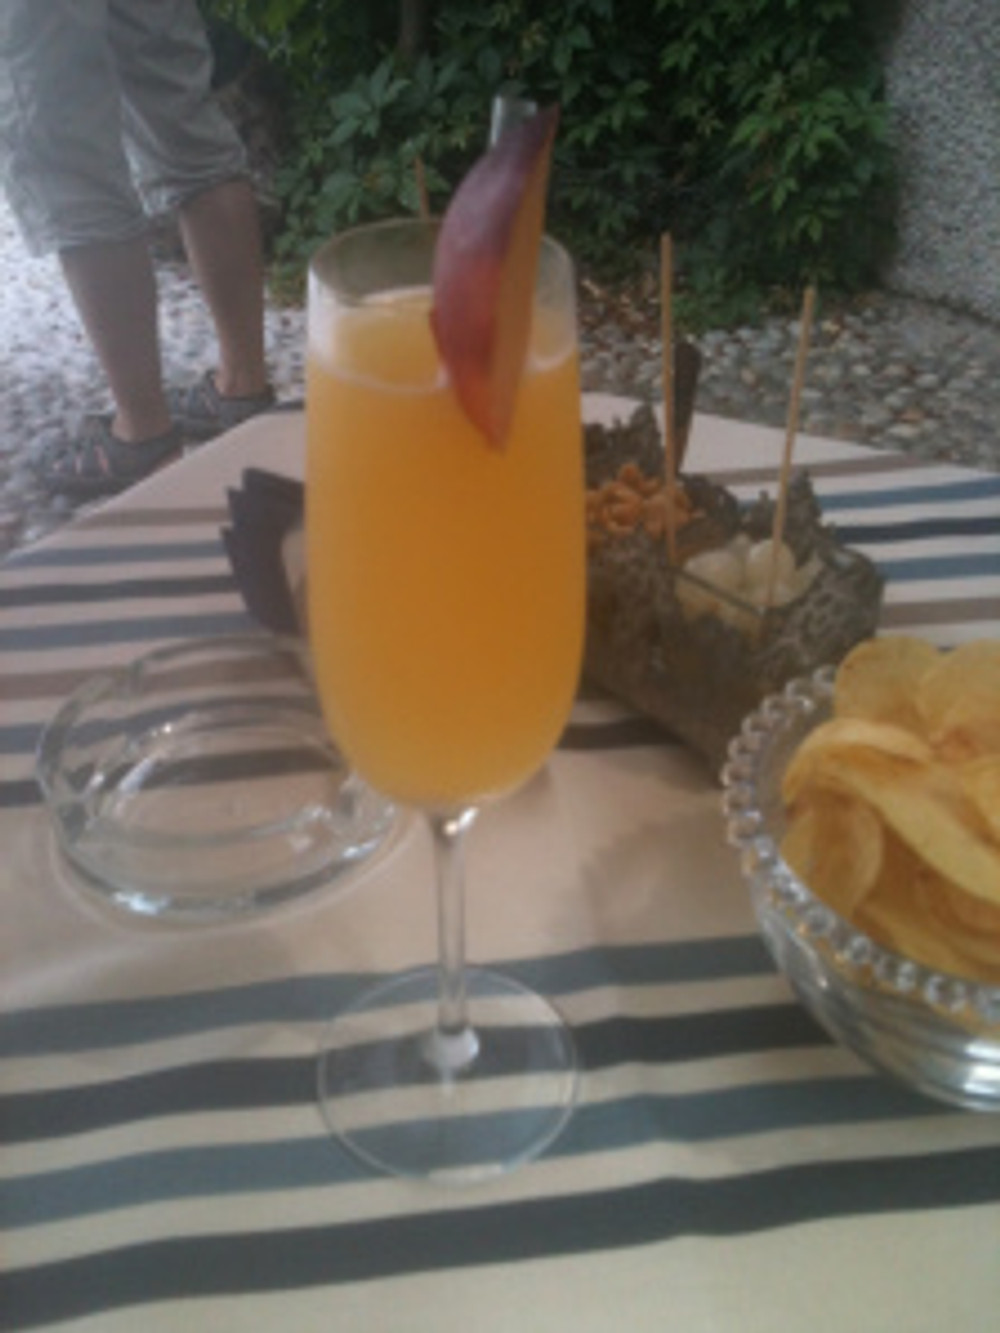 A celebratory Bellini sipped outside a cafe on the banks of Lake Como.